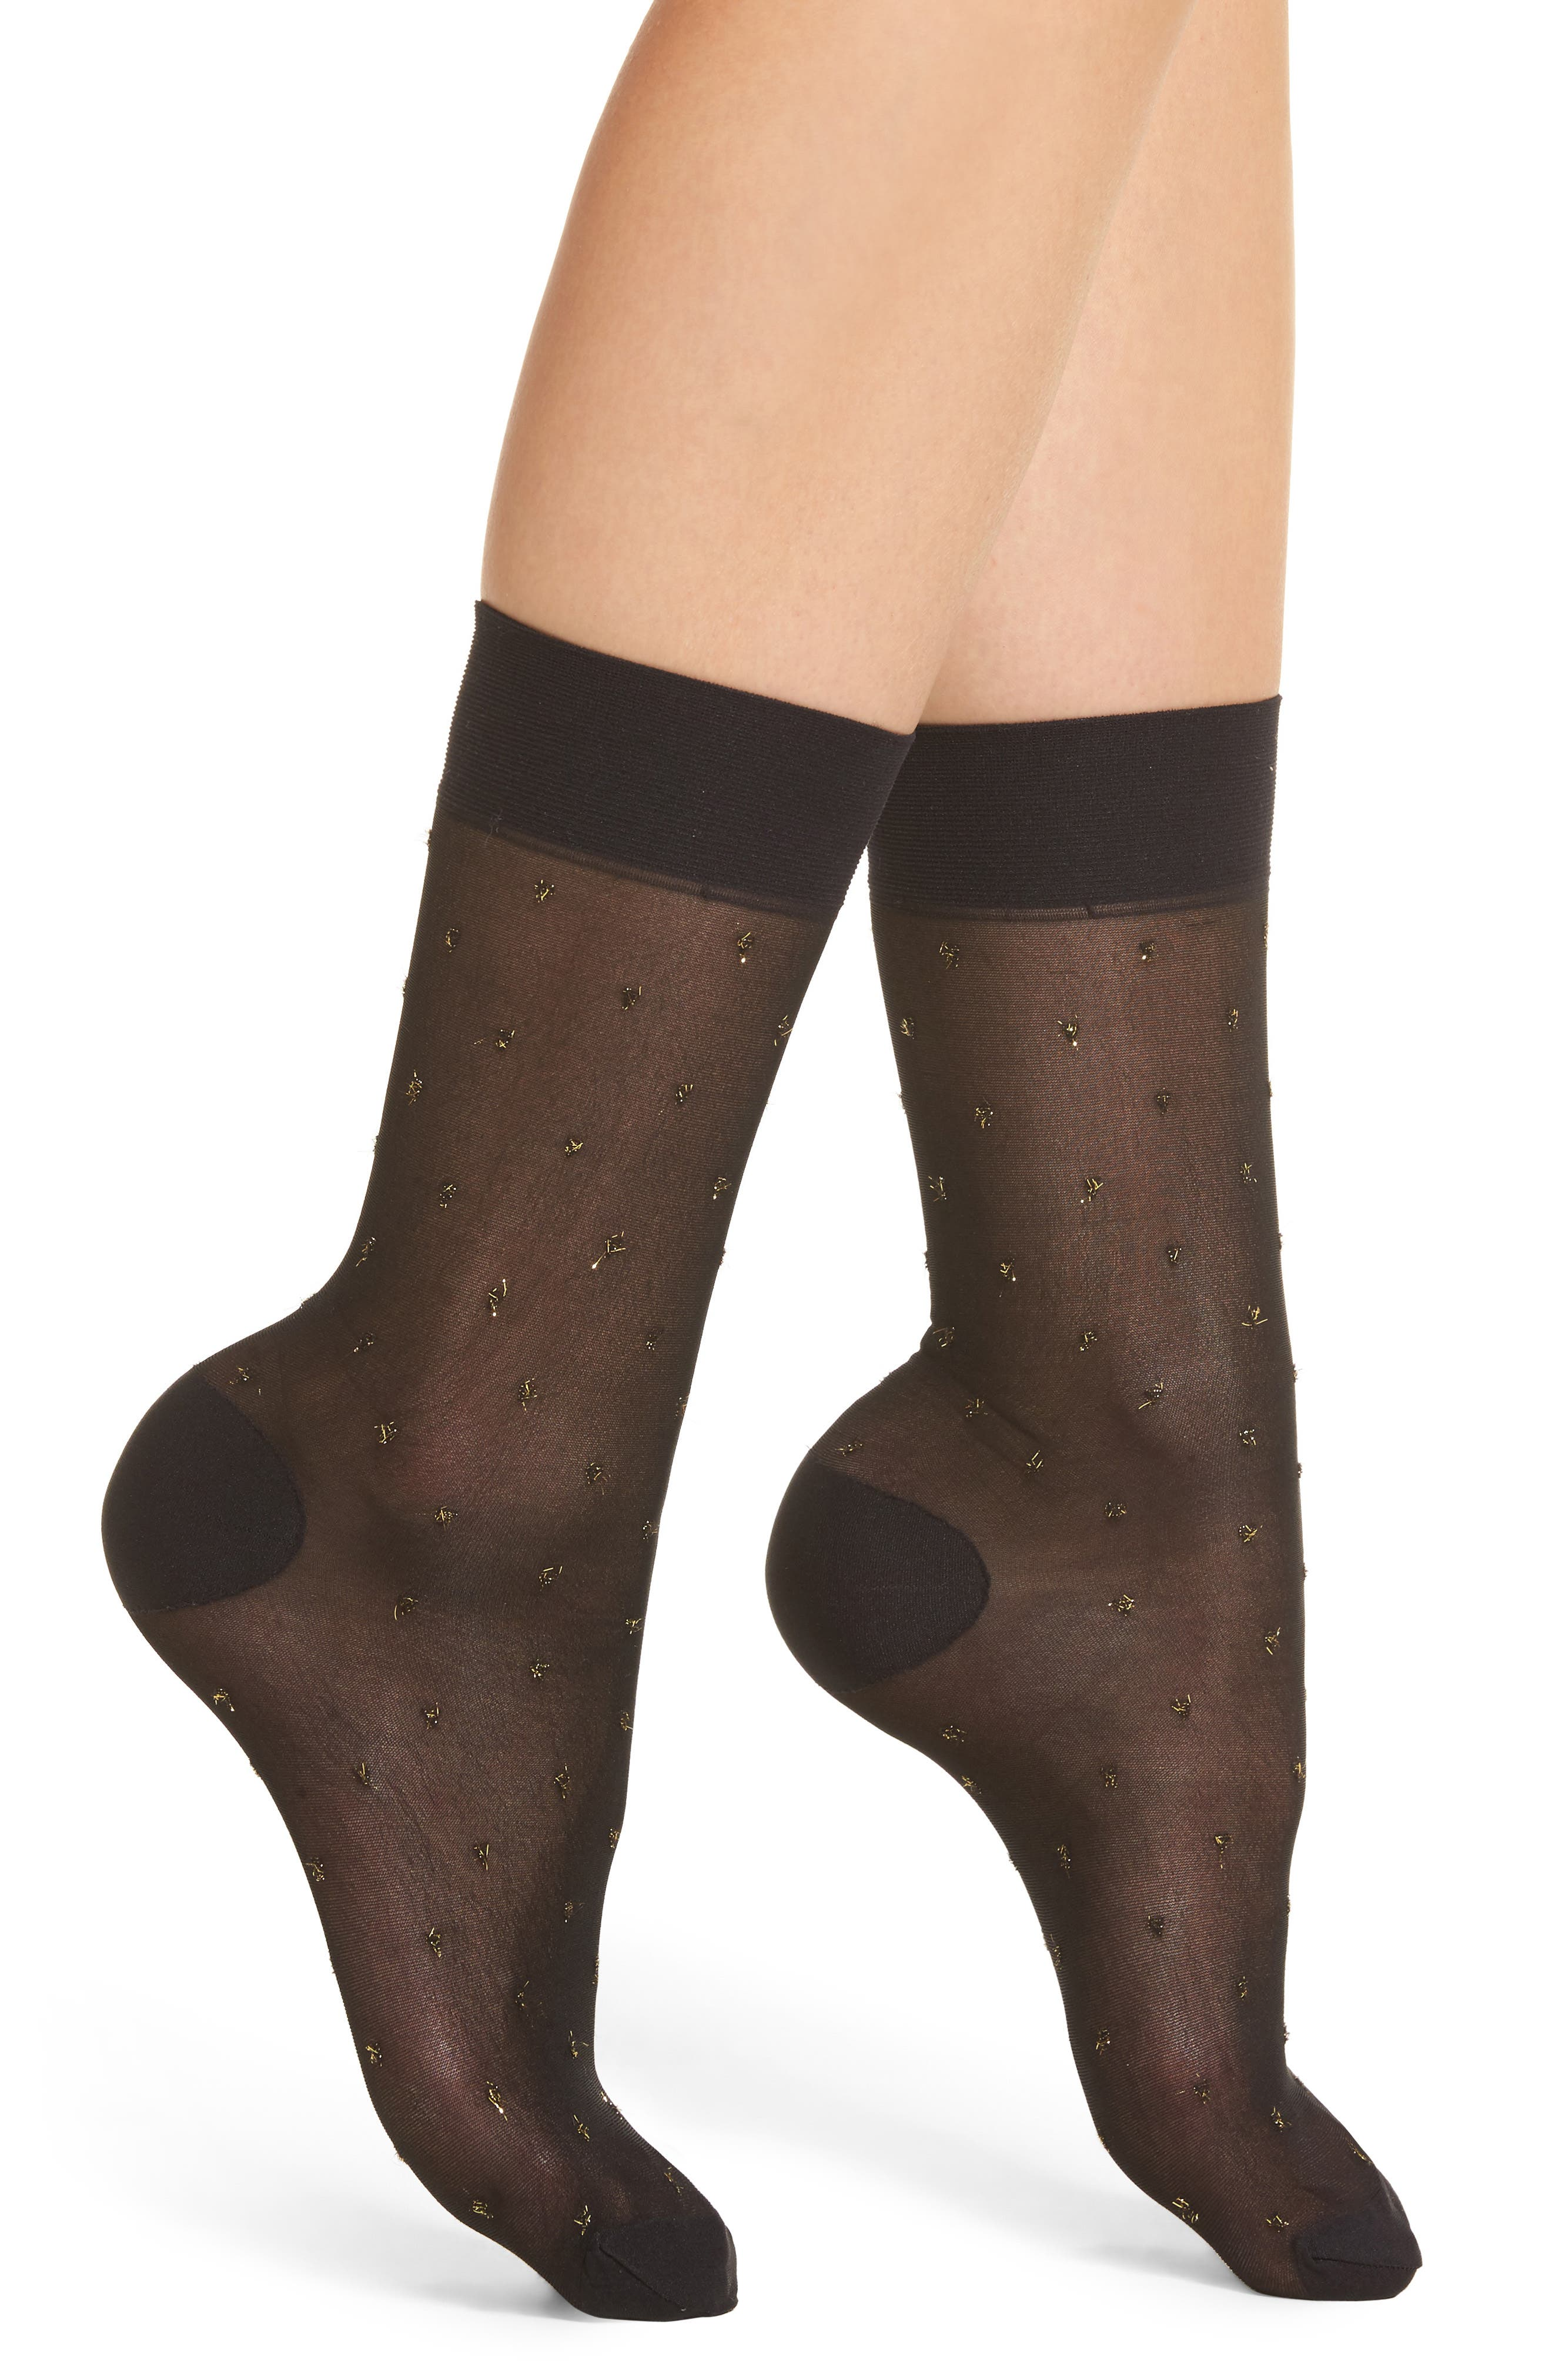 Gold Dot Sheer Socks,                             Main thumbnail 1, color,                             Black